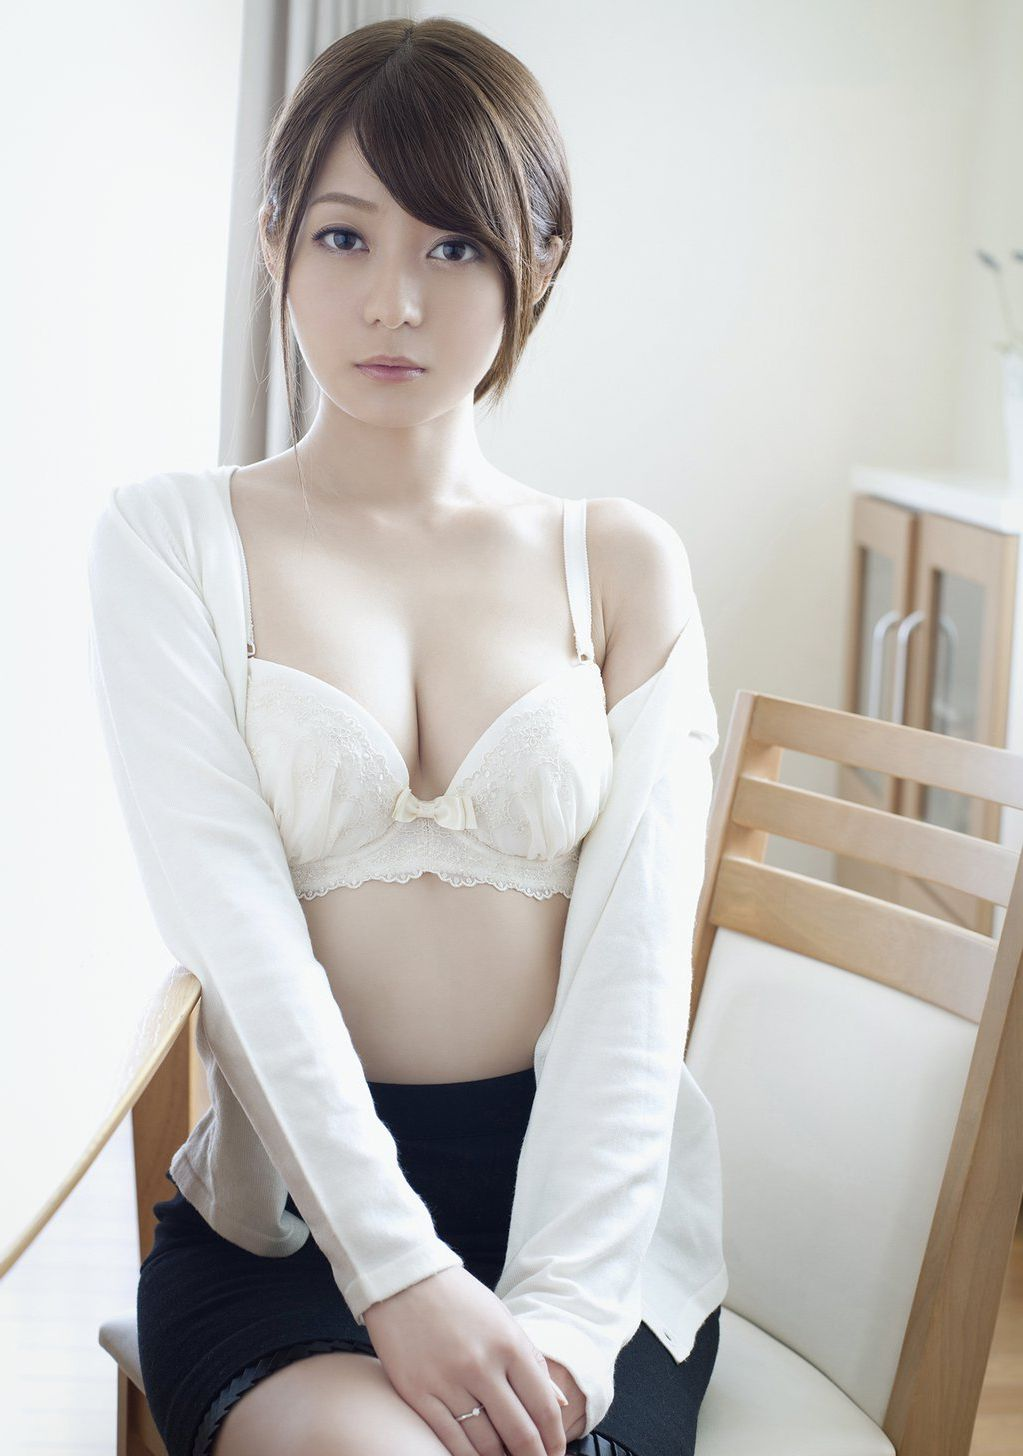 For the Rina ishihara sexy that was